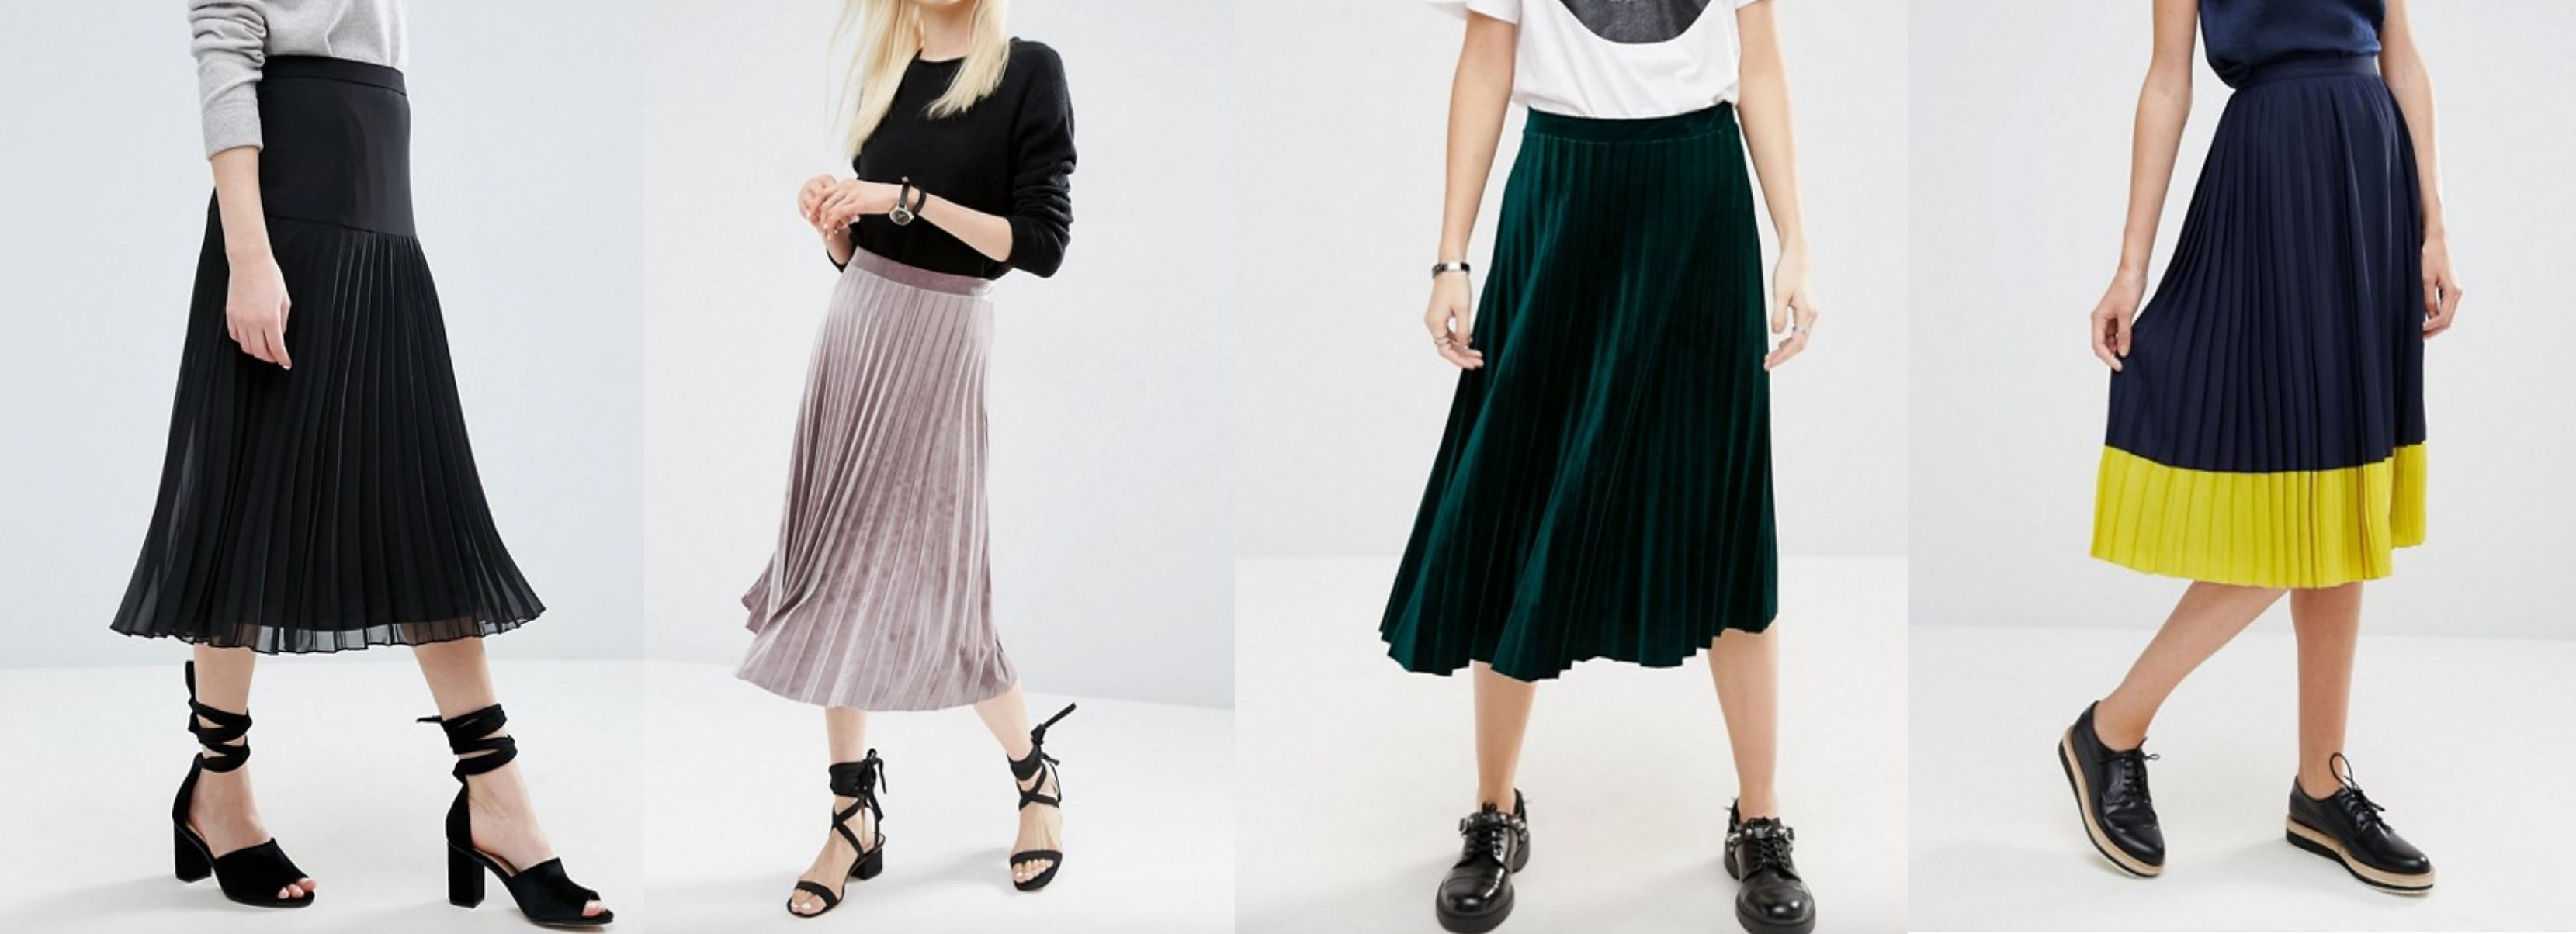 best-midi-skirt-outfits